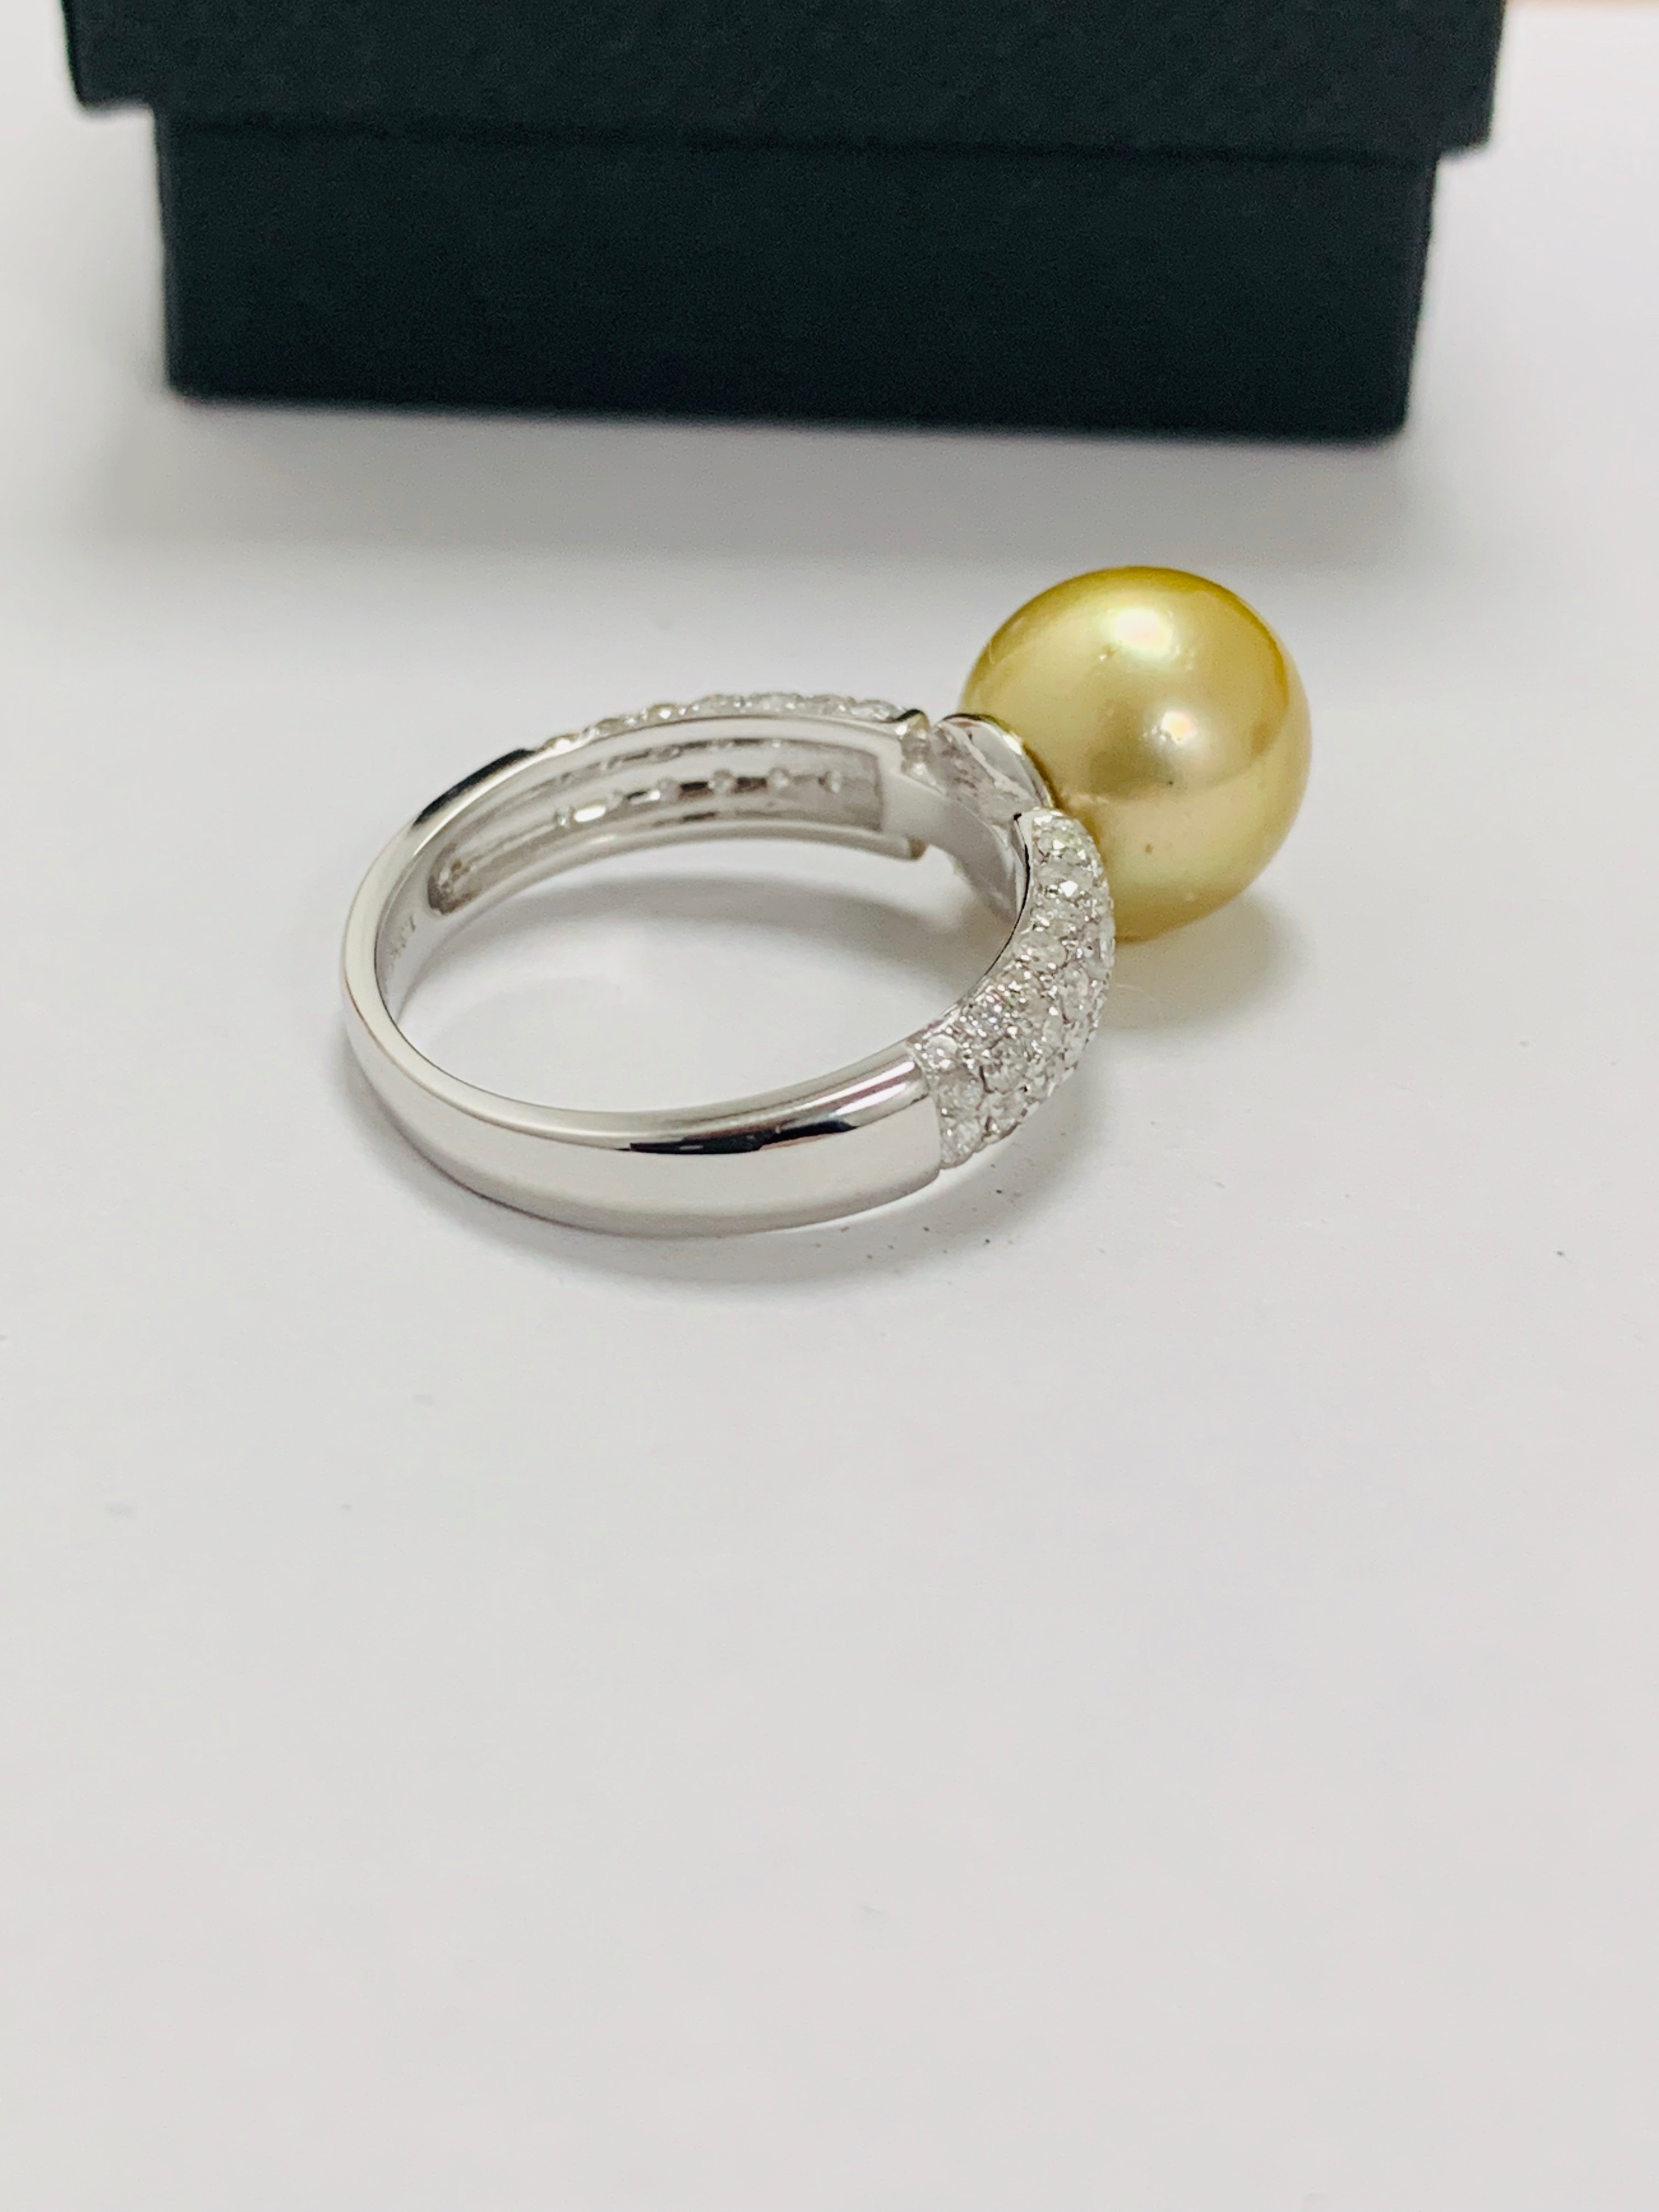 14ct white gold pearl & diamond ring. - Image 10 of 13